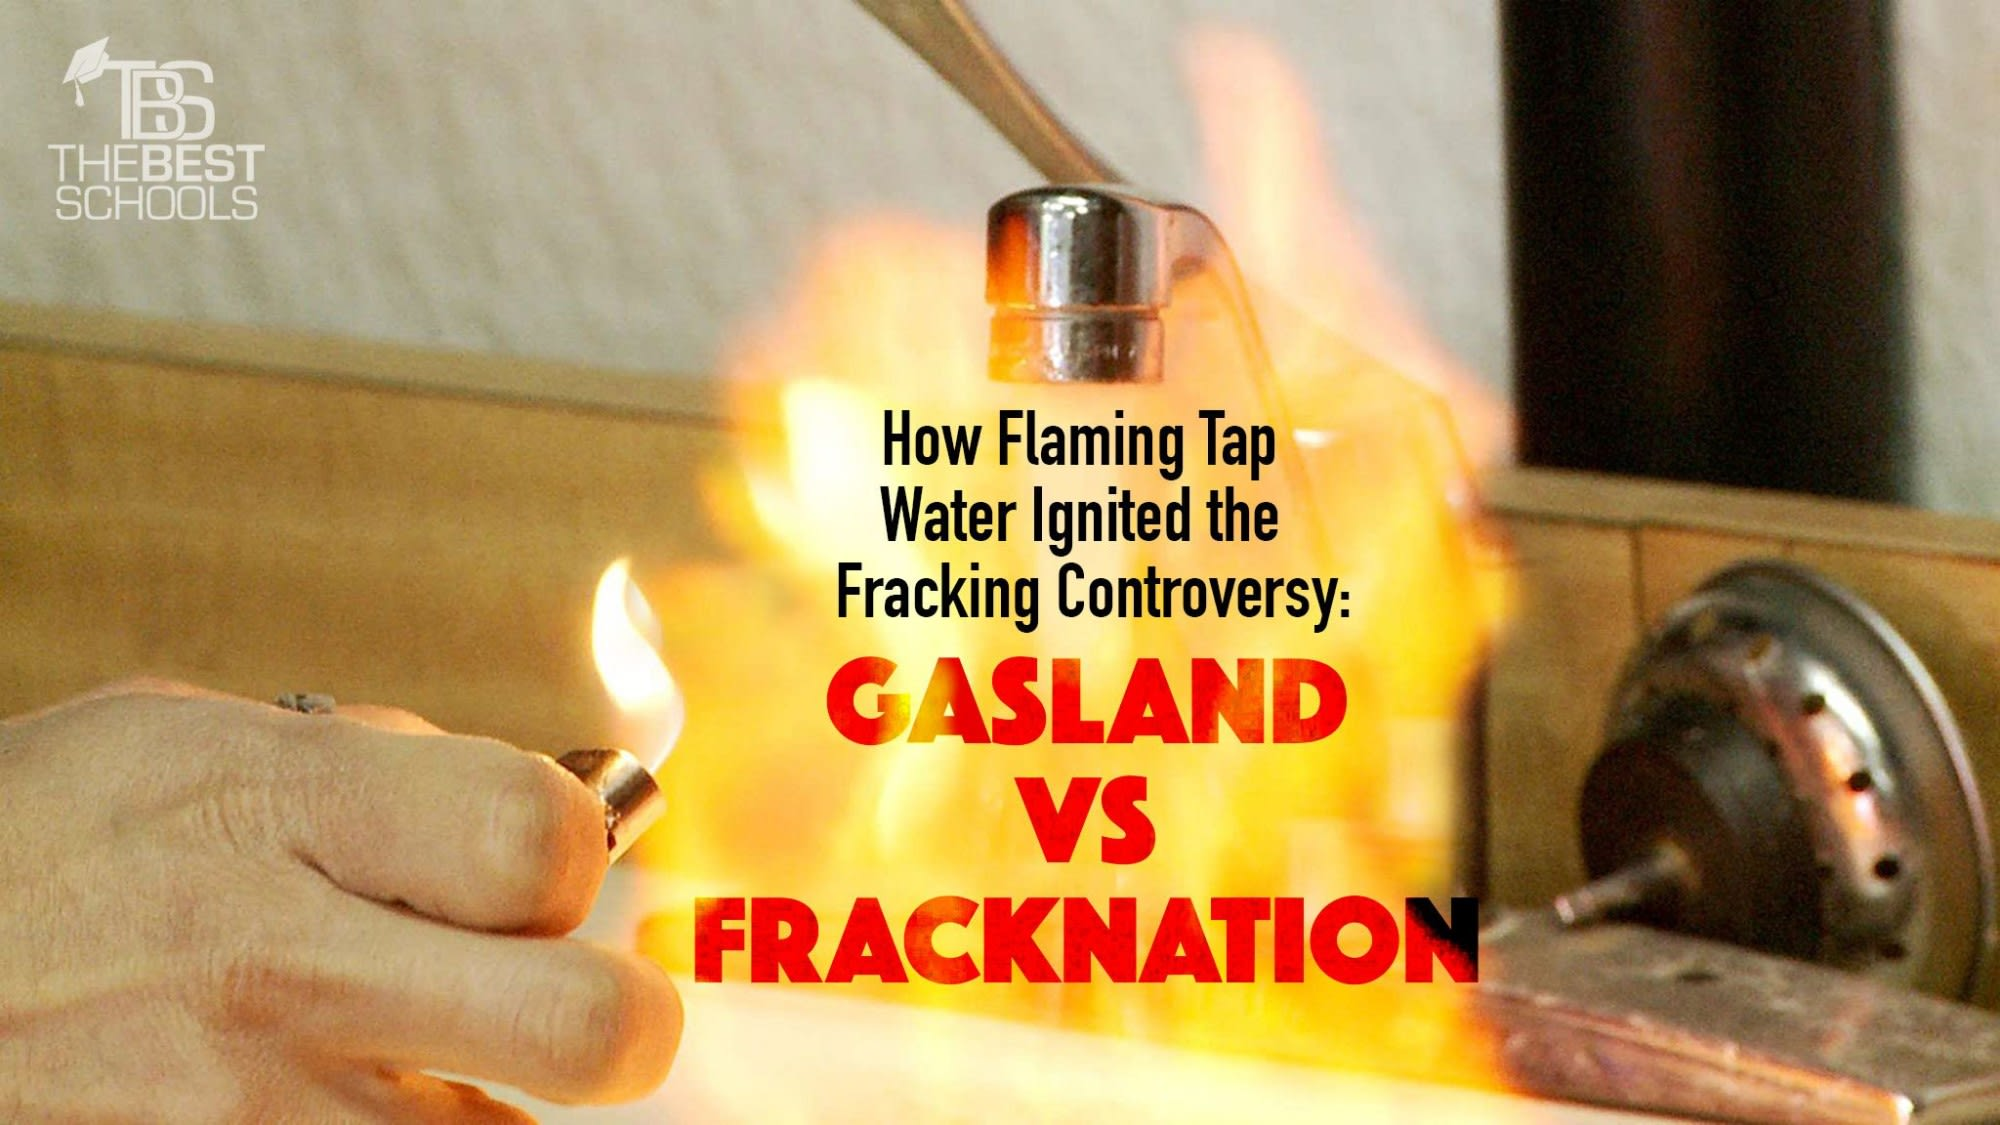 gasland vs fracknation essay